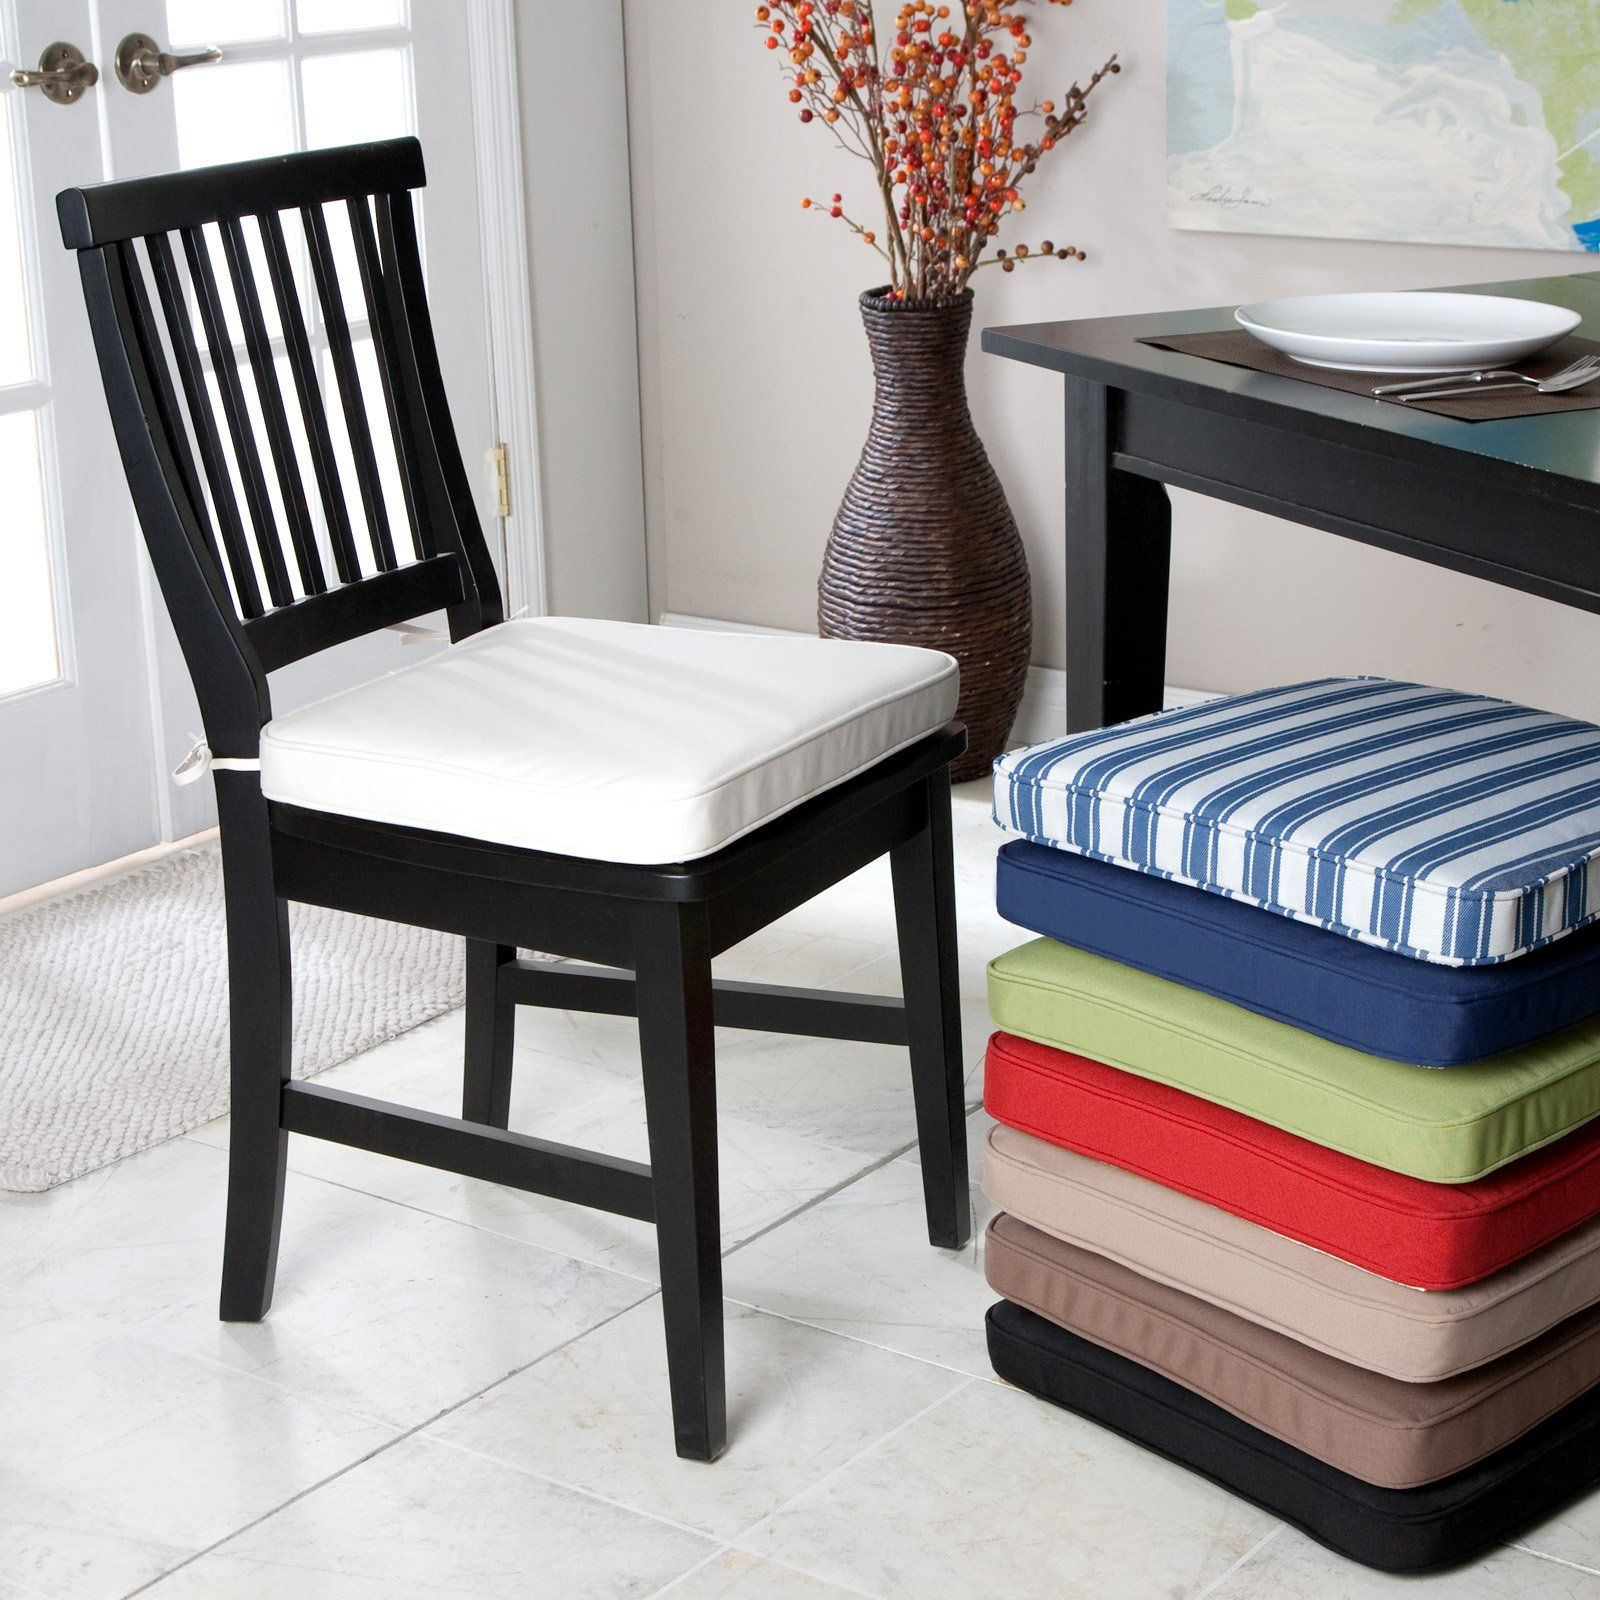 Dining Room Chair Cushion Have To Have It Deauville 18 X 16 5 Dining Chair Cushion